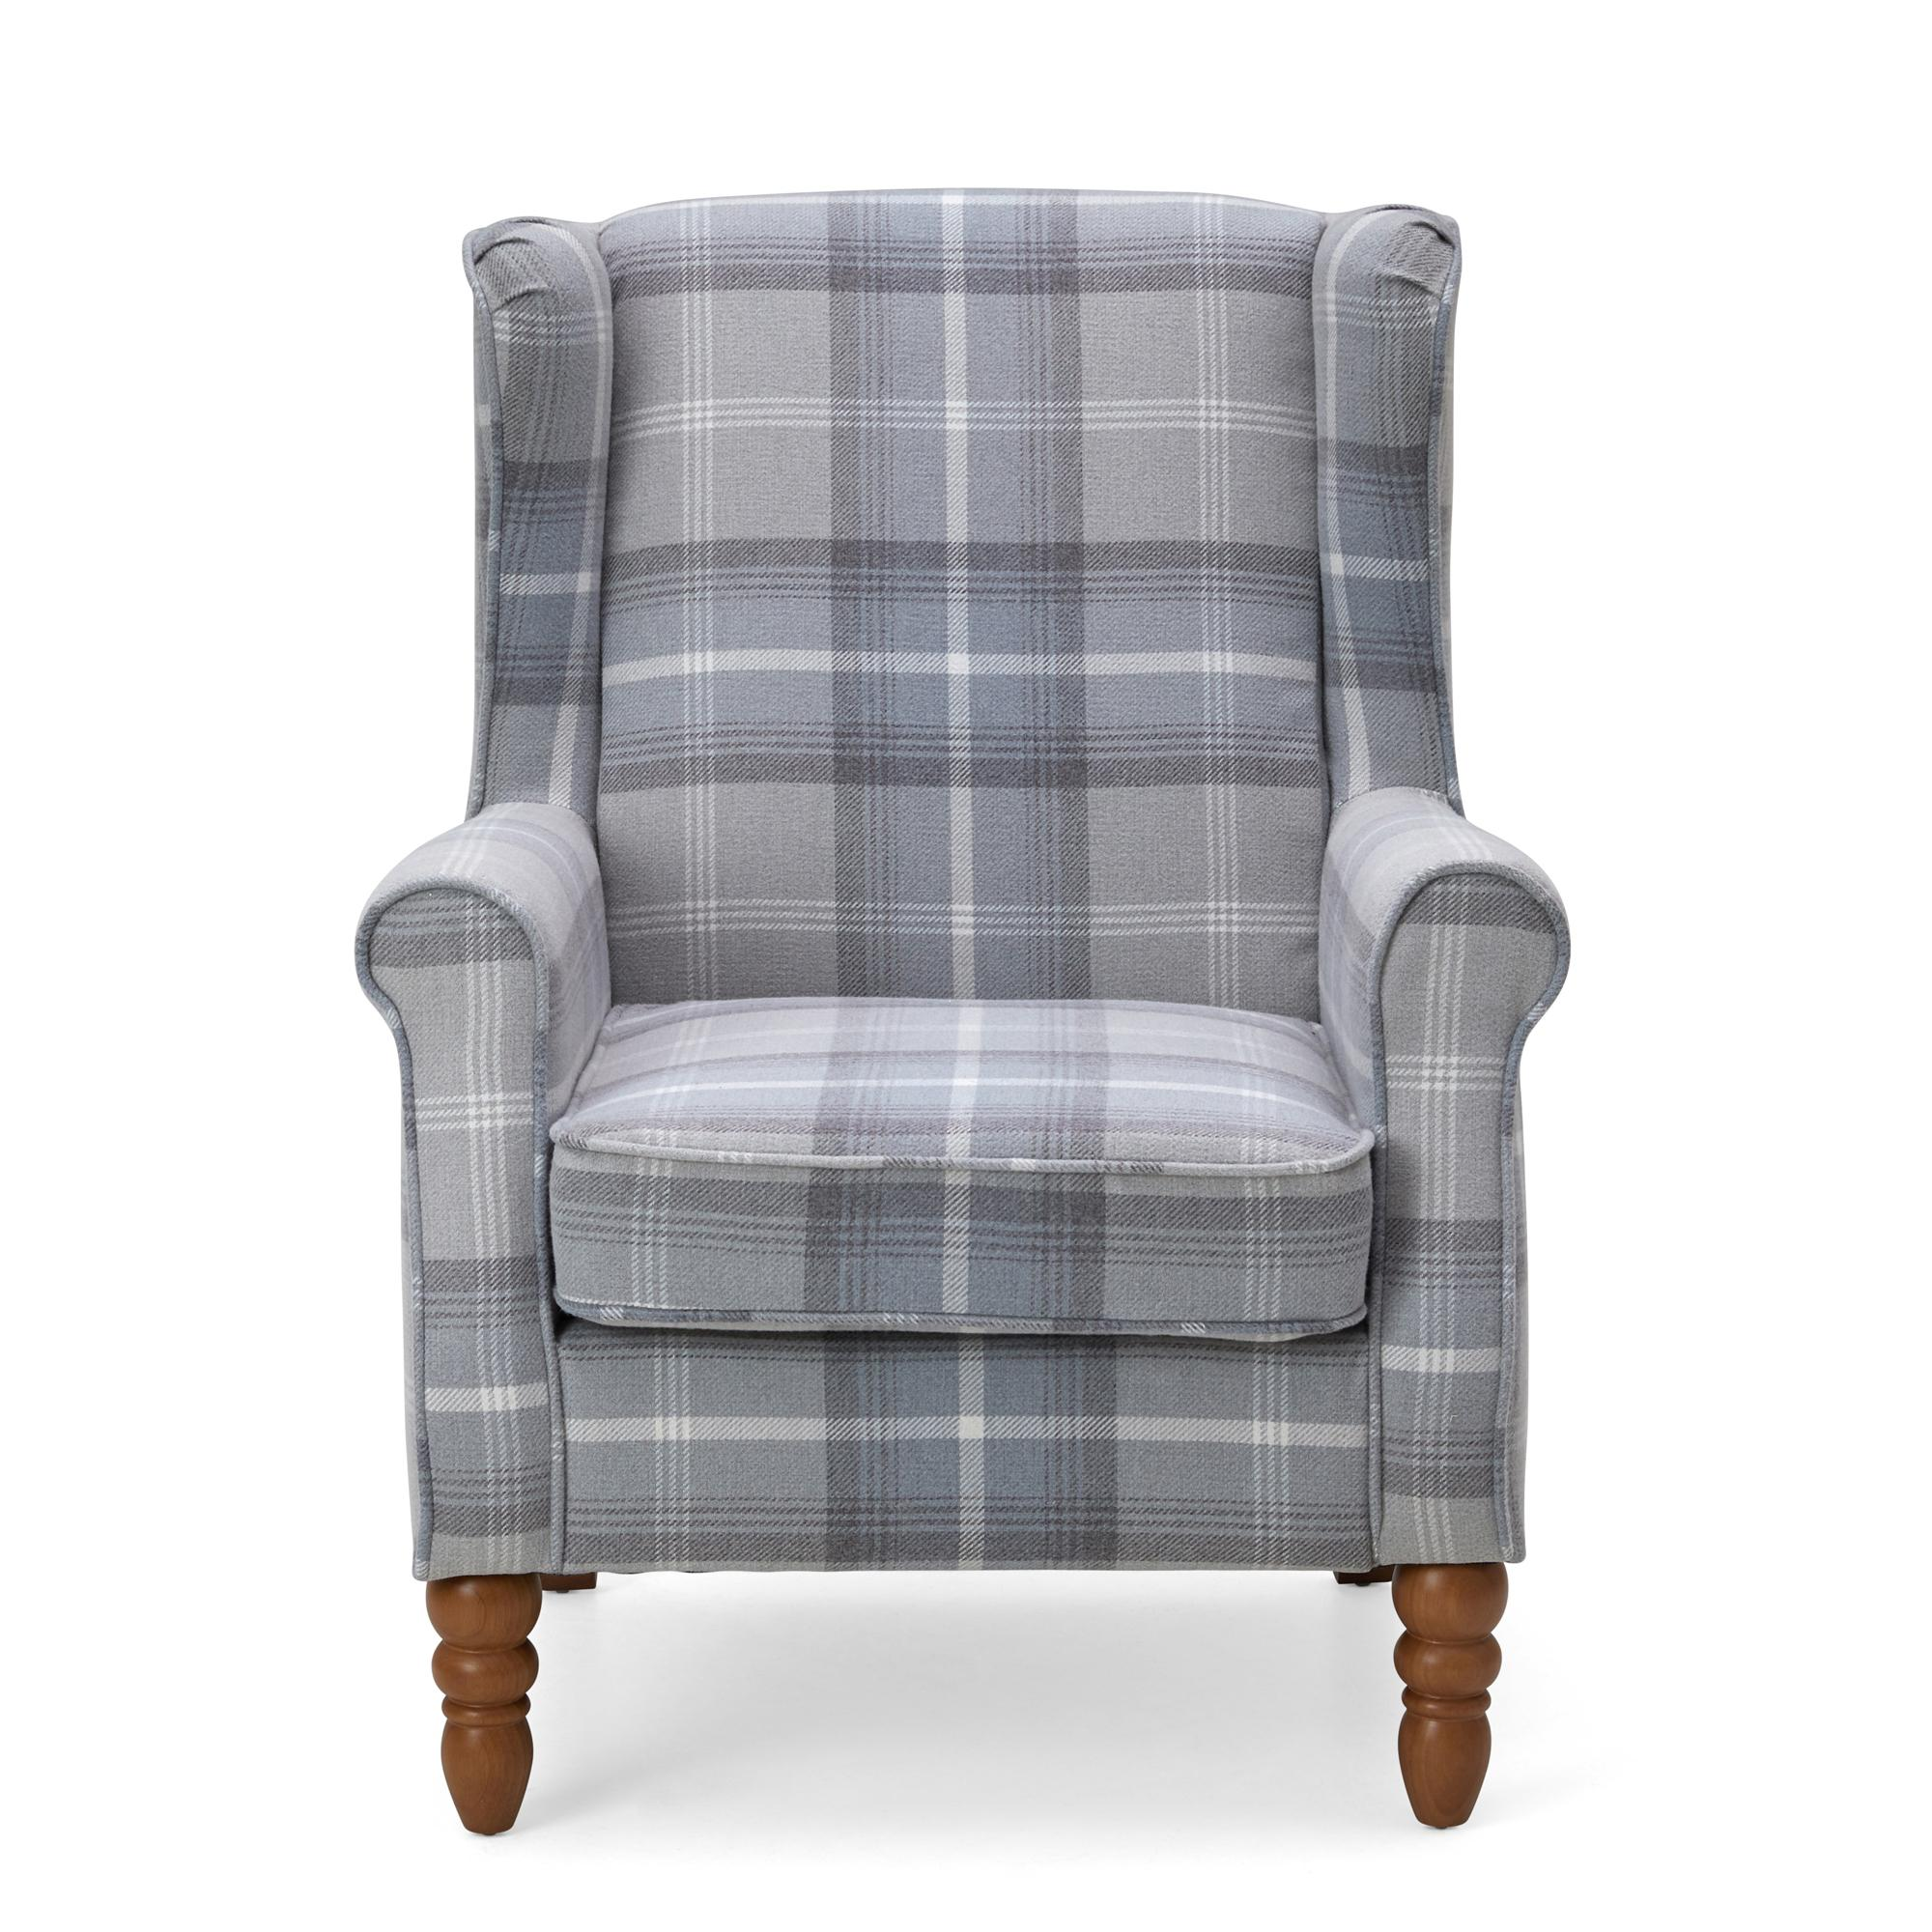 Oswald Check Wingback Armchair - Grey